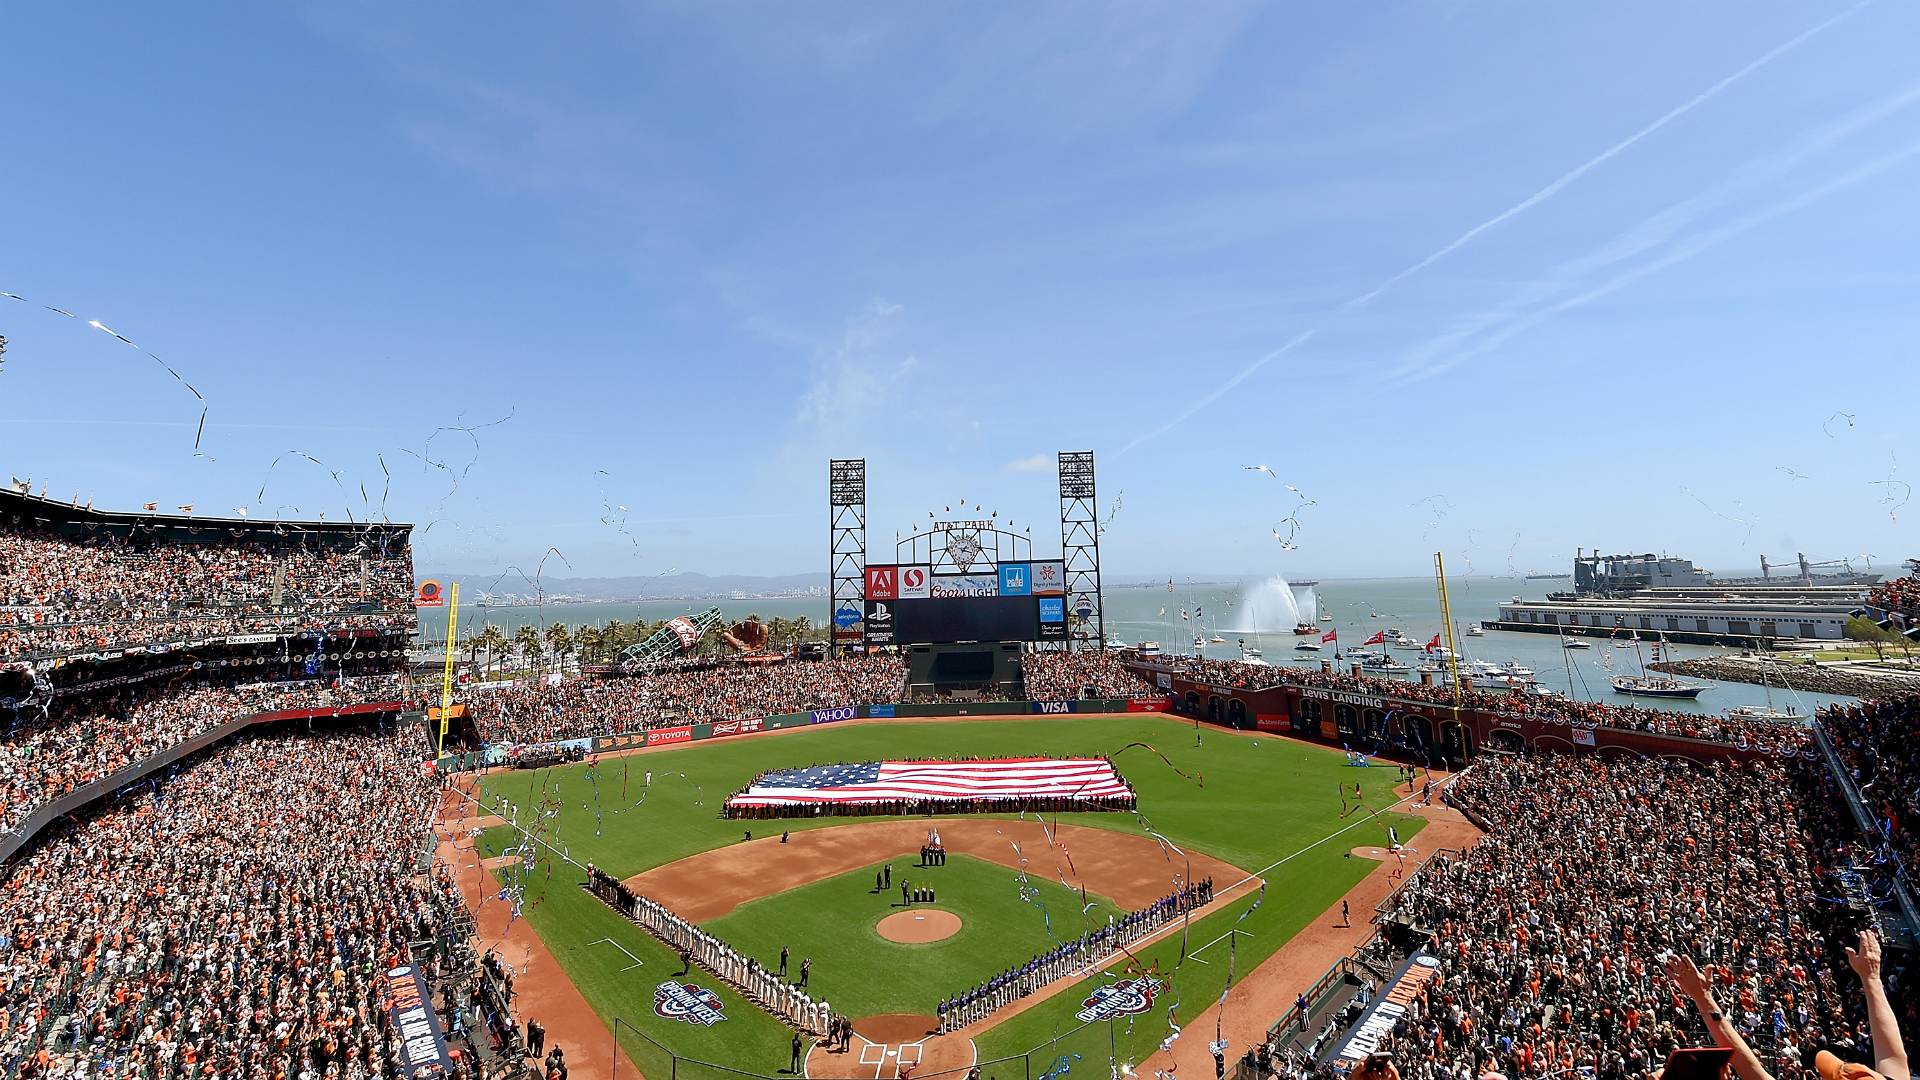 Natural disaster  hits during Reds, Giants game